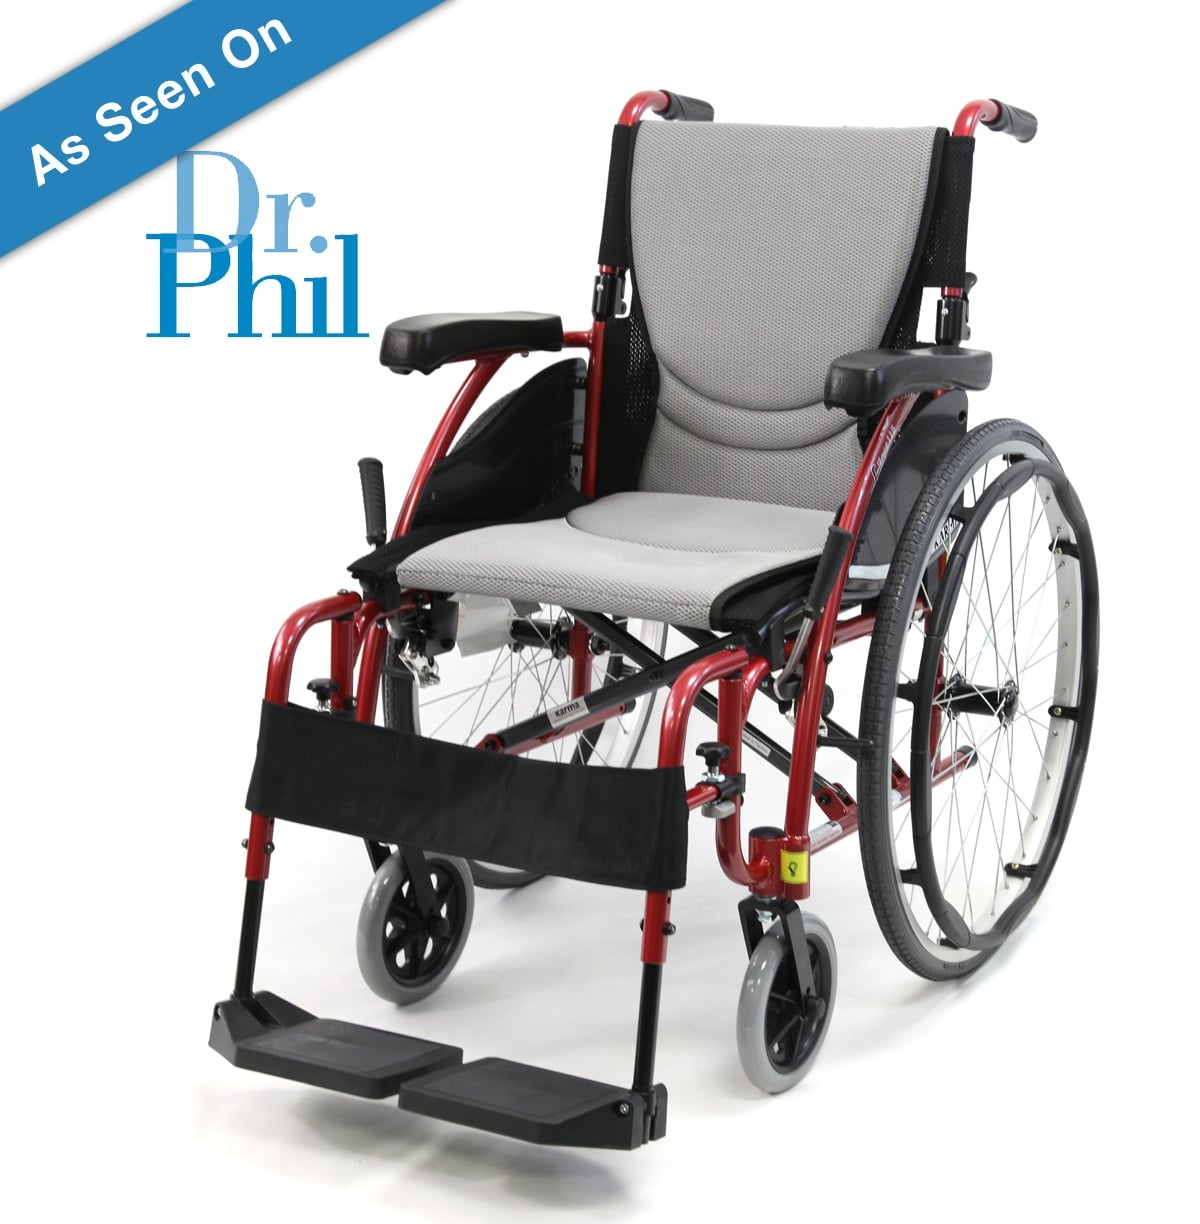 Bed Wheelchair S Ergo 115 25 Lbs